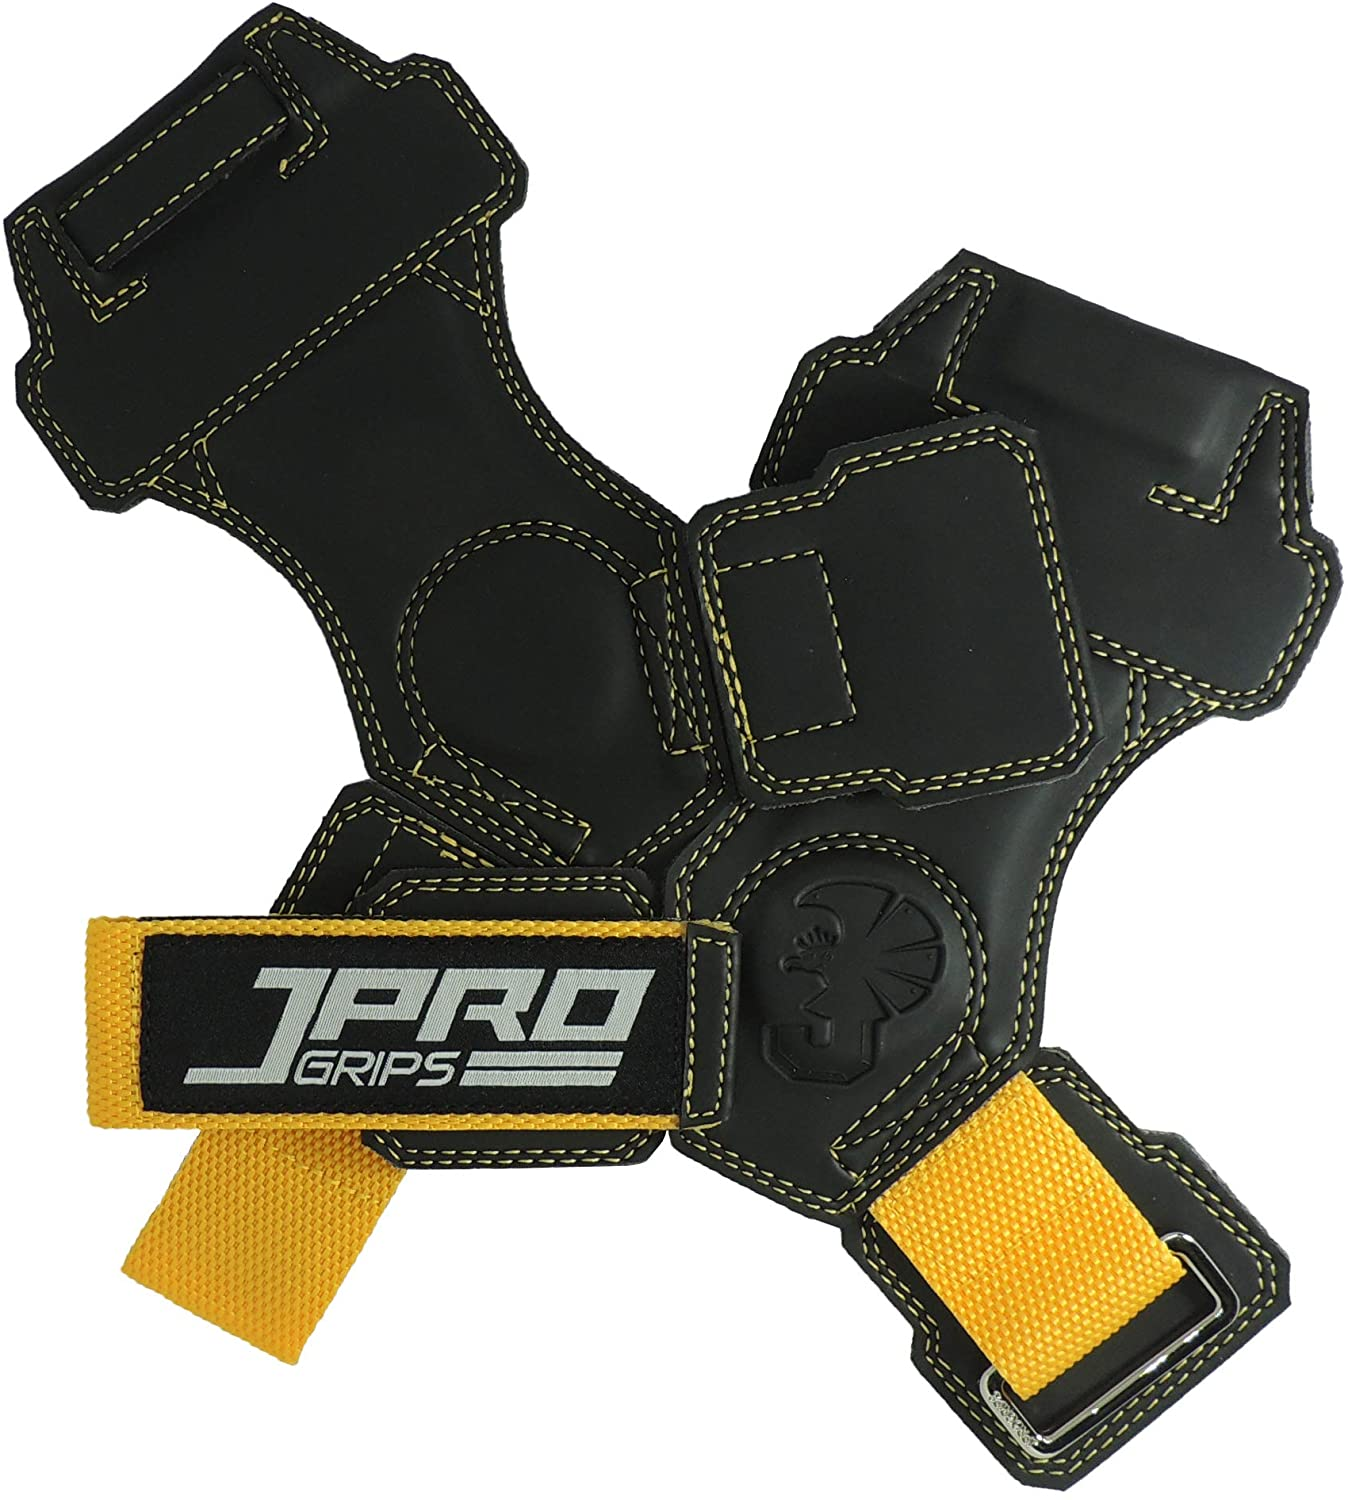 JPRO Innovative Design from The USA Manufactured in Thailand. Weight Lifting Accessory with Unisex Grip. Developed and Patented 'Finger Loop' Revolutionary Fitness and Gym Gear.